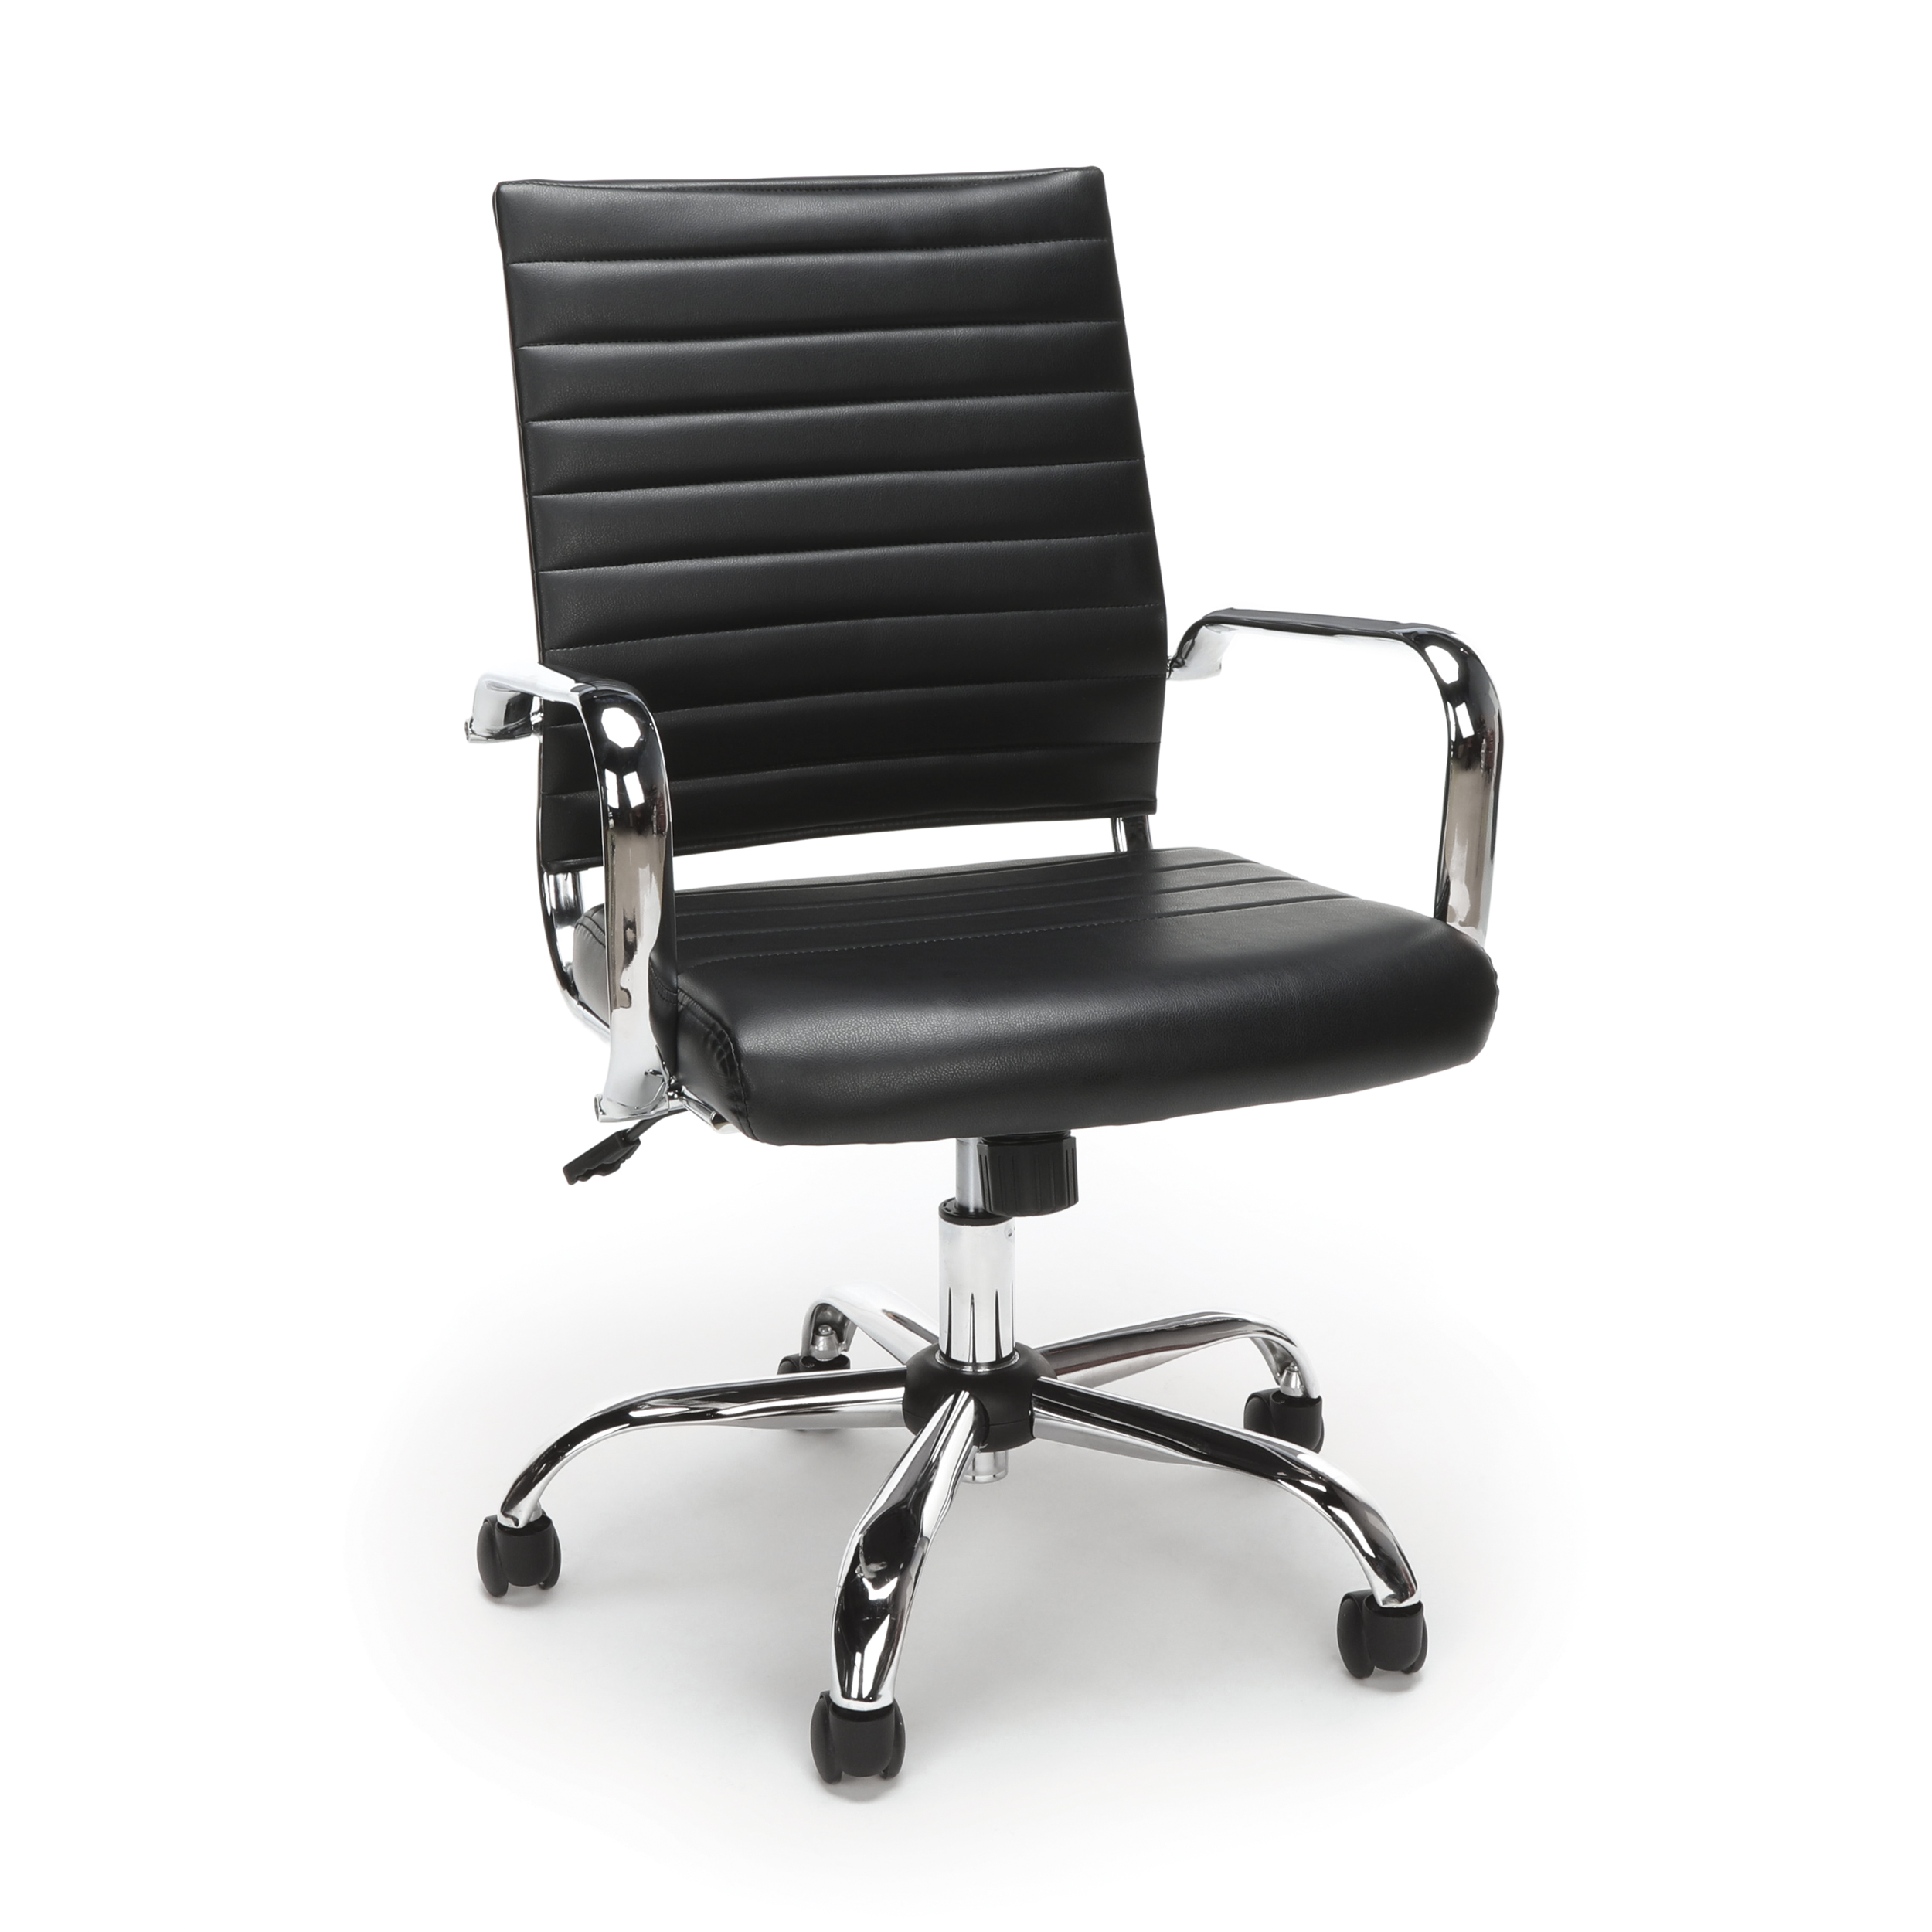 Essentials by OFM ESS-6095 Soft Ribbed Leather Executive Conference Room Chair, Black